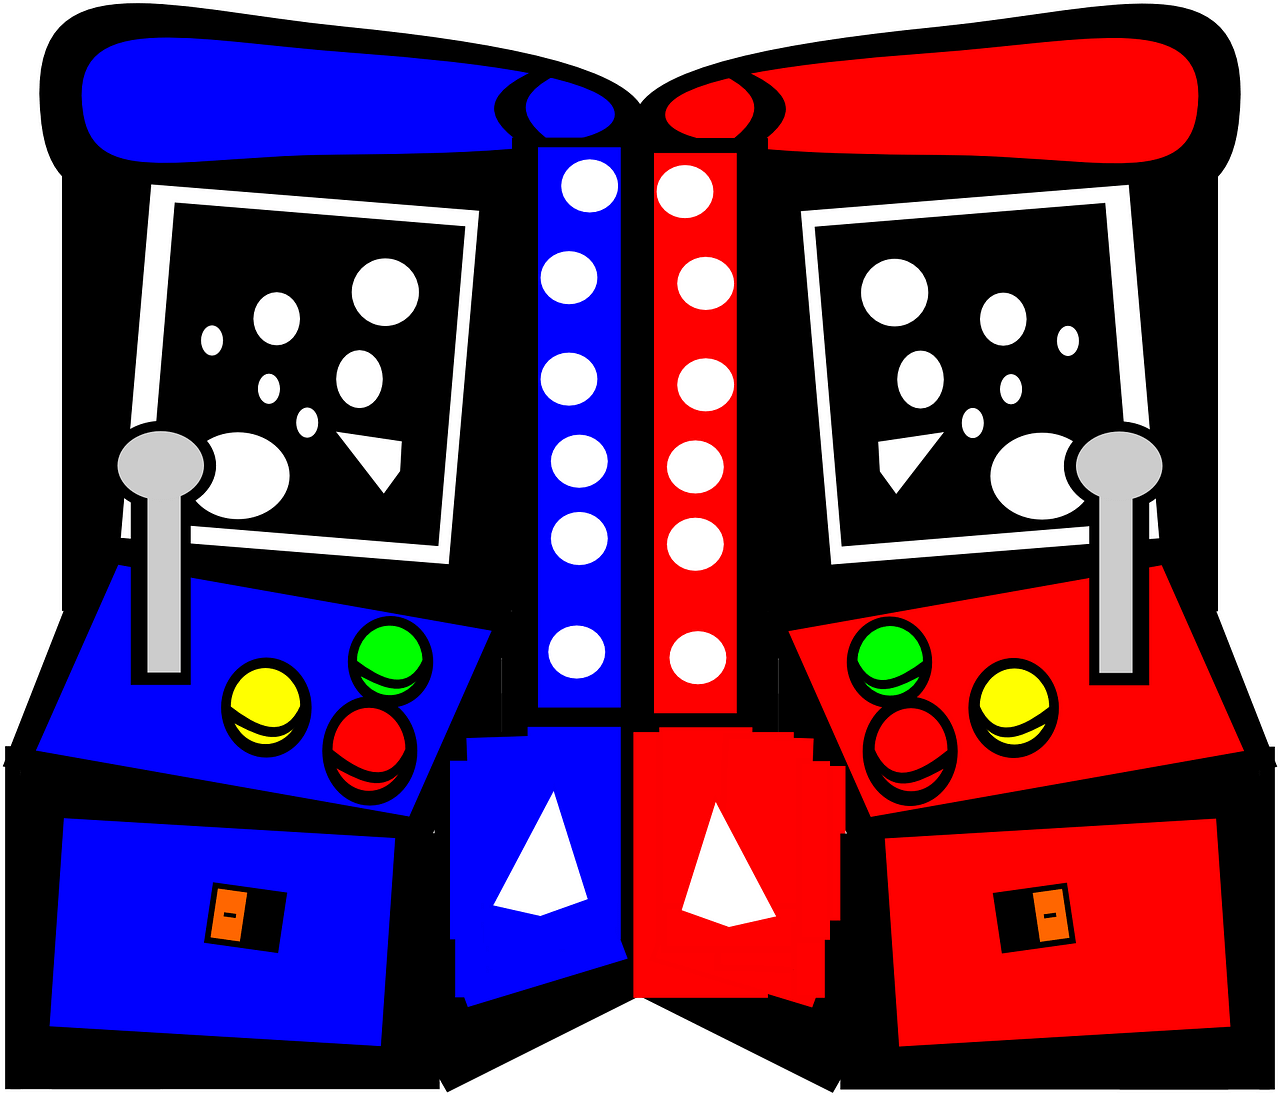 Games clipart game zone. Win at arcade with